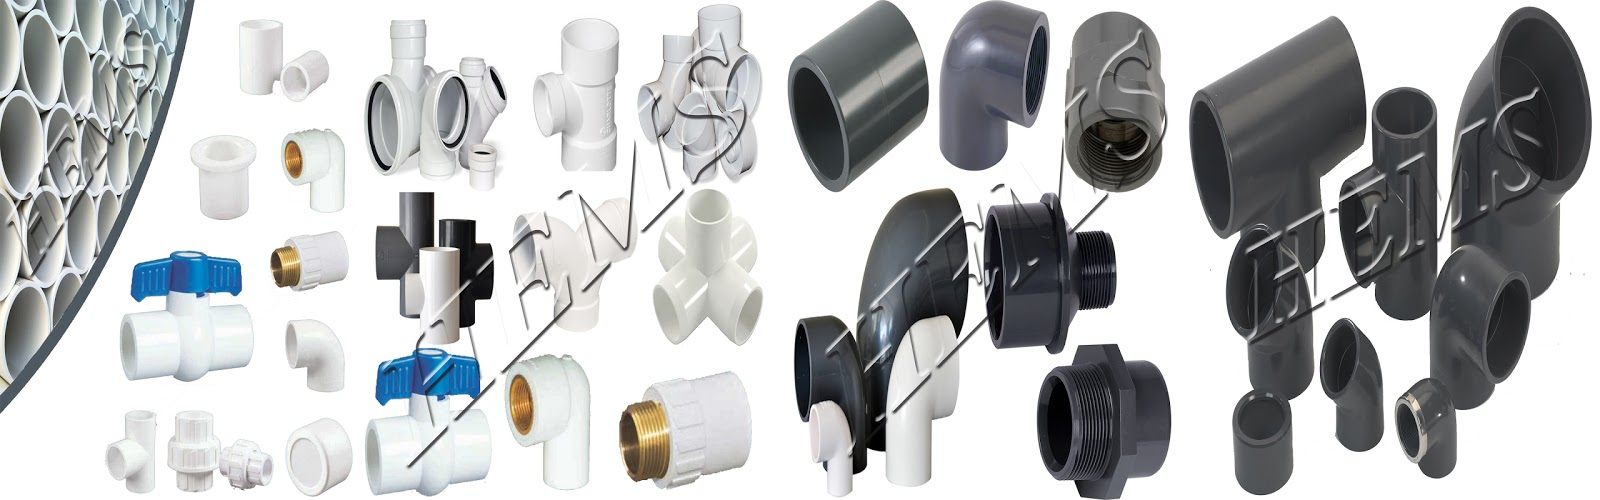 Pvc Joints Cpvc Fittings Hems Industries Pvt Ltd